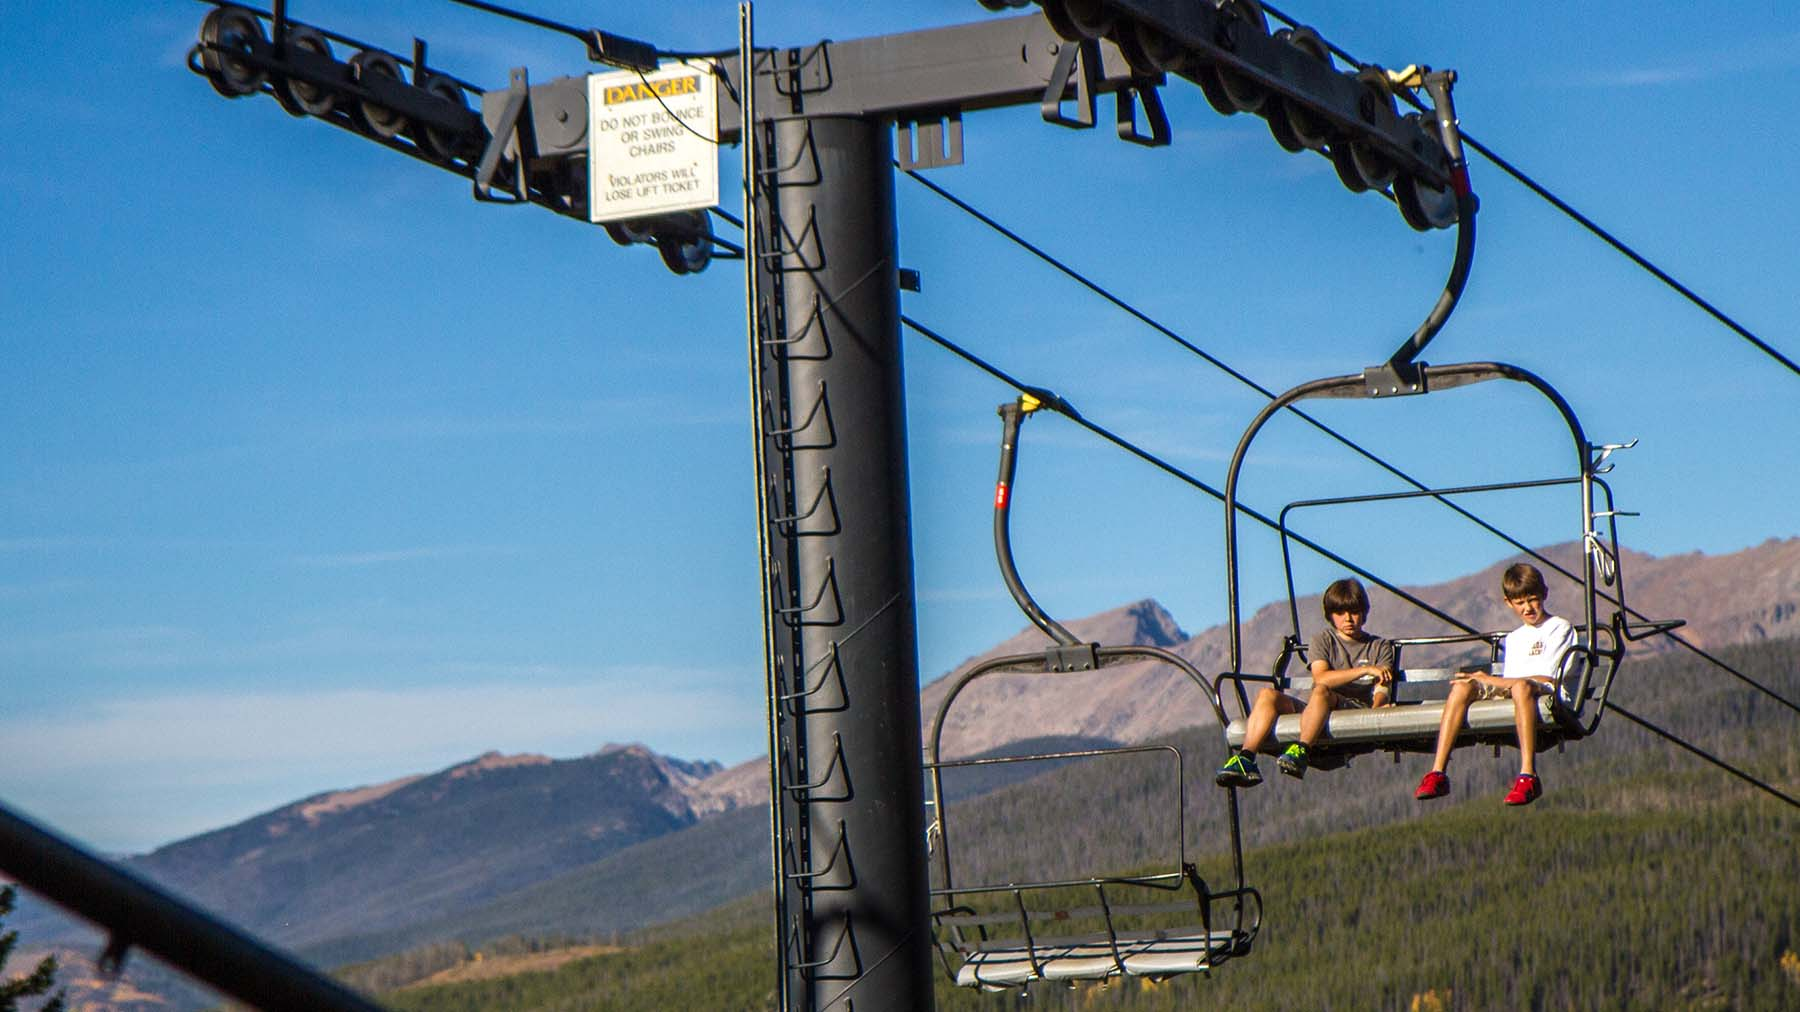 rides with other lift az daily flagstaff arizona online plus snowbowl news events business chairlift fun chair open scenic